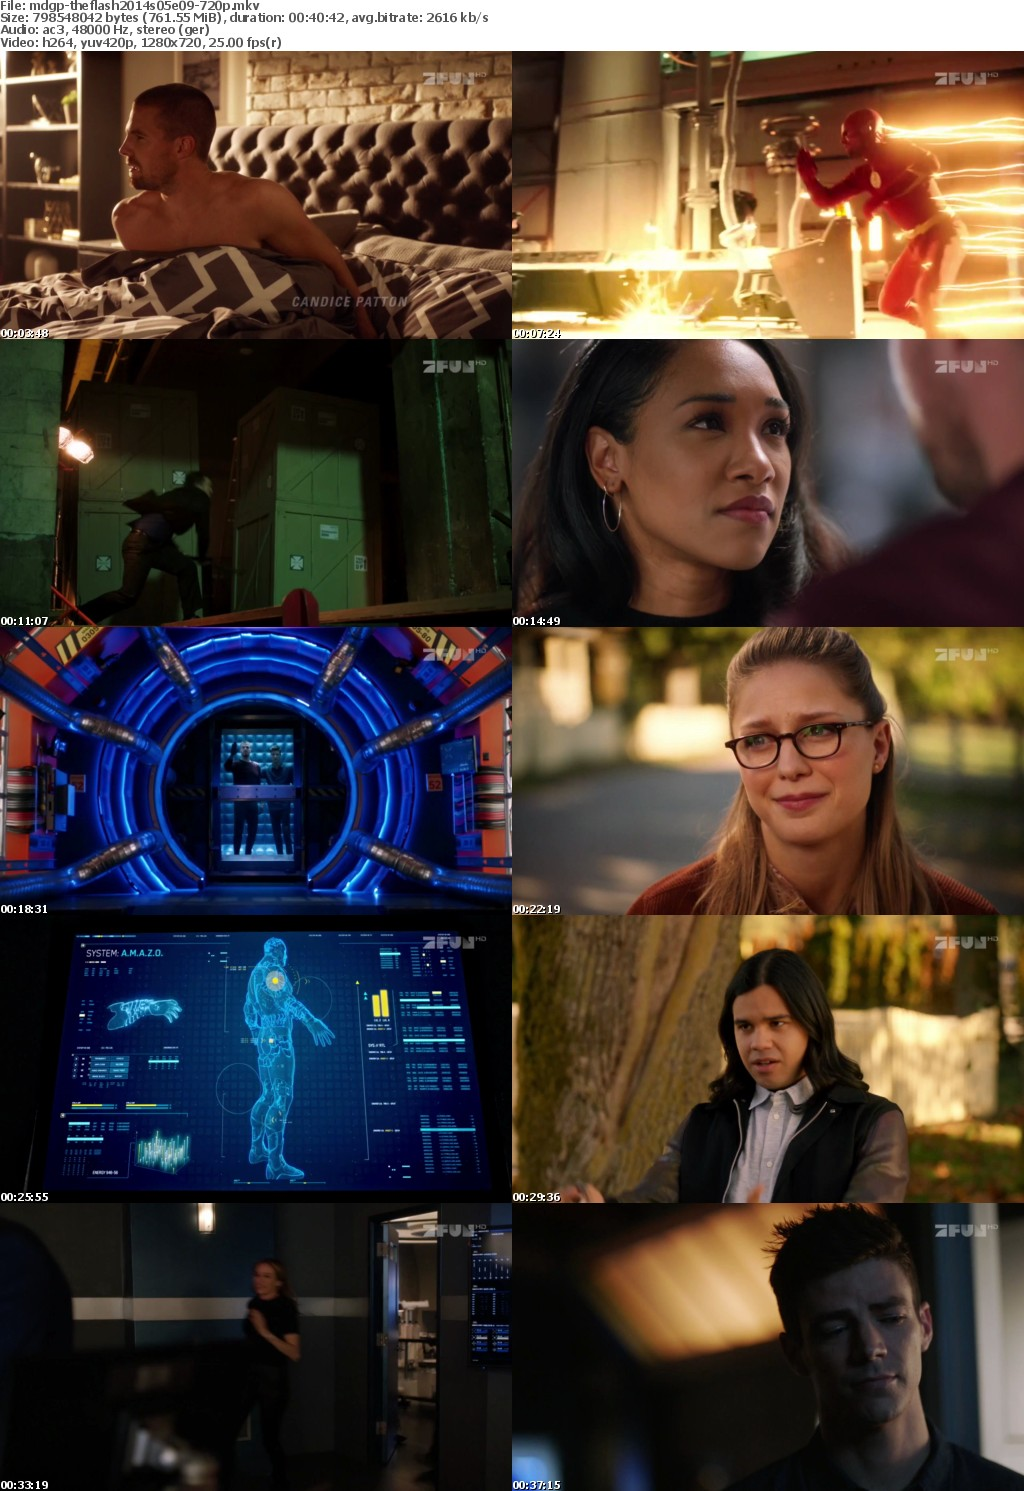 The Flash 2014 S05E09 Anderswelten GERMAN 720p HDTV x264-MDGP